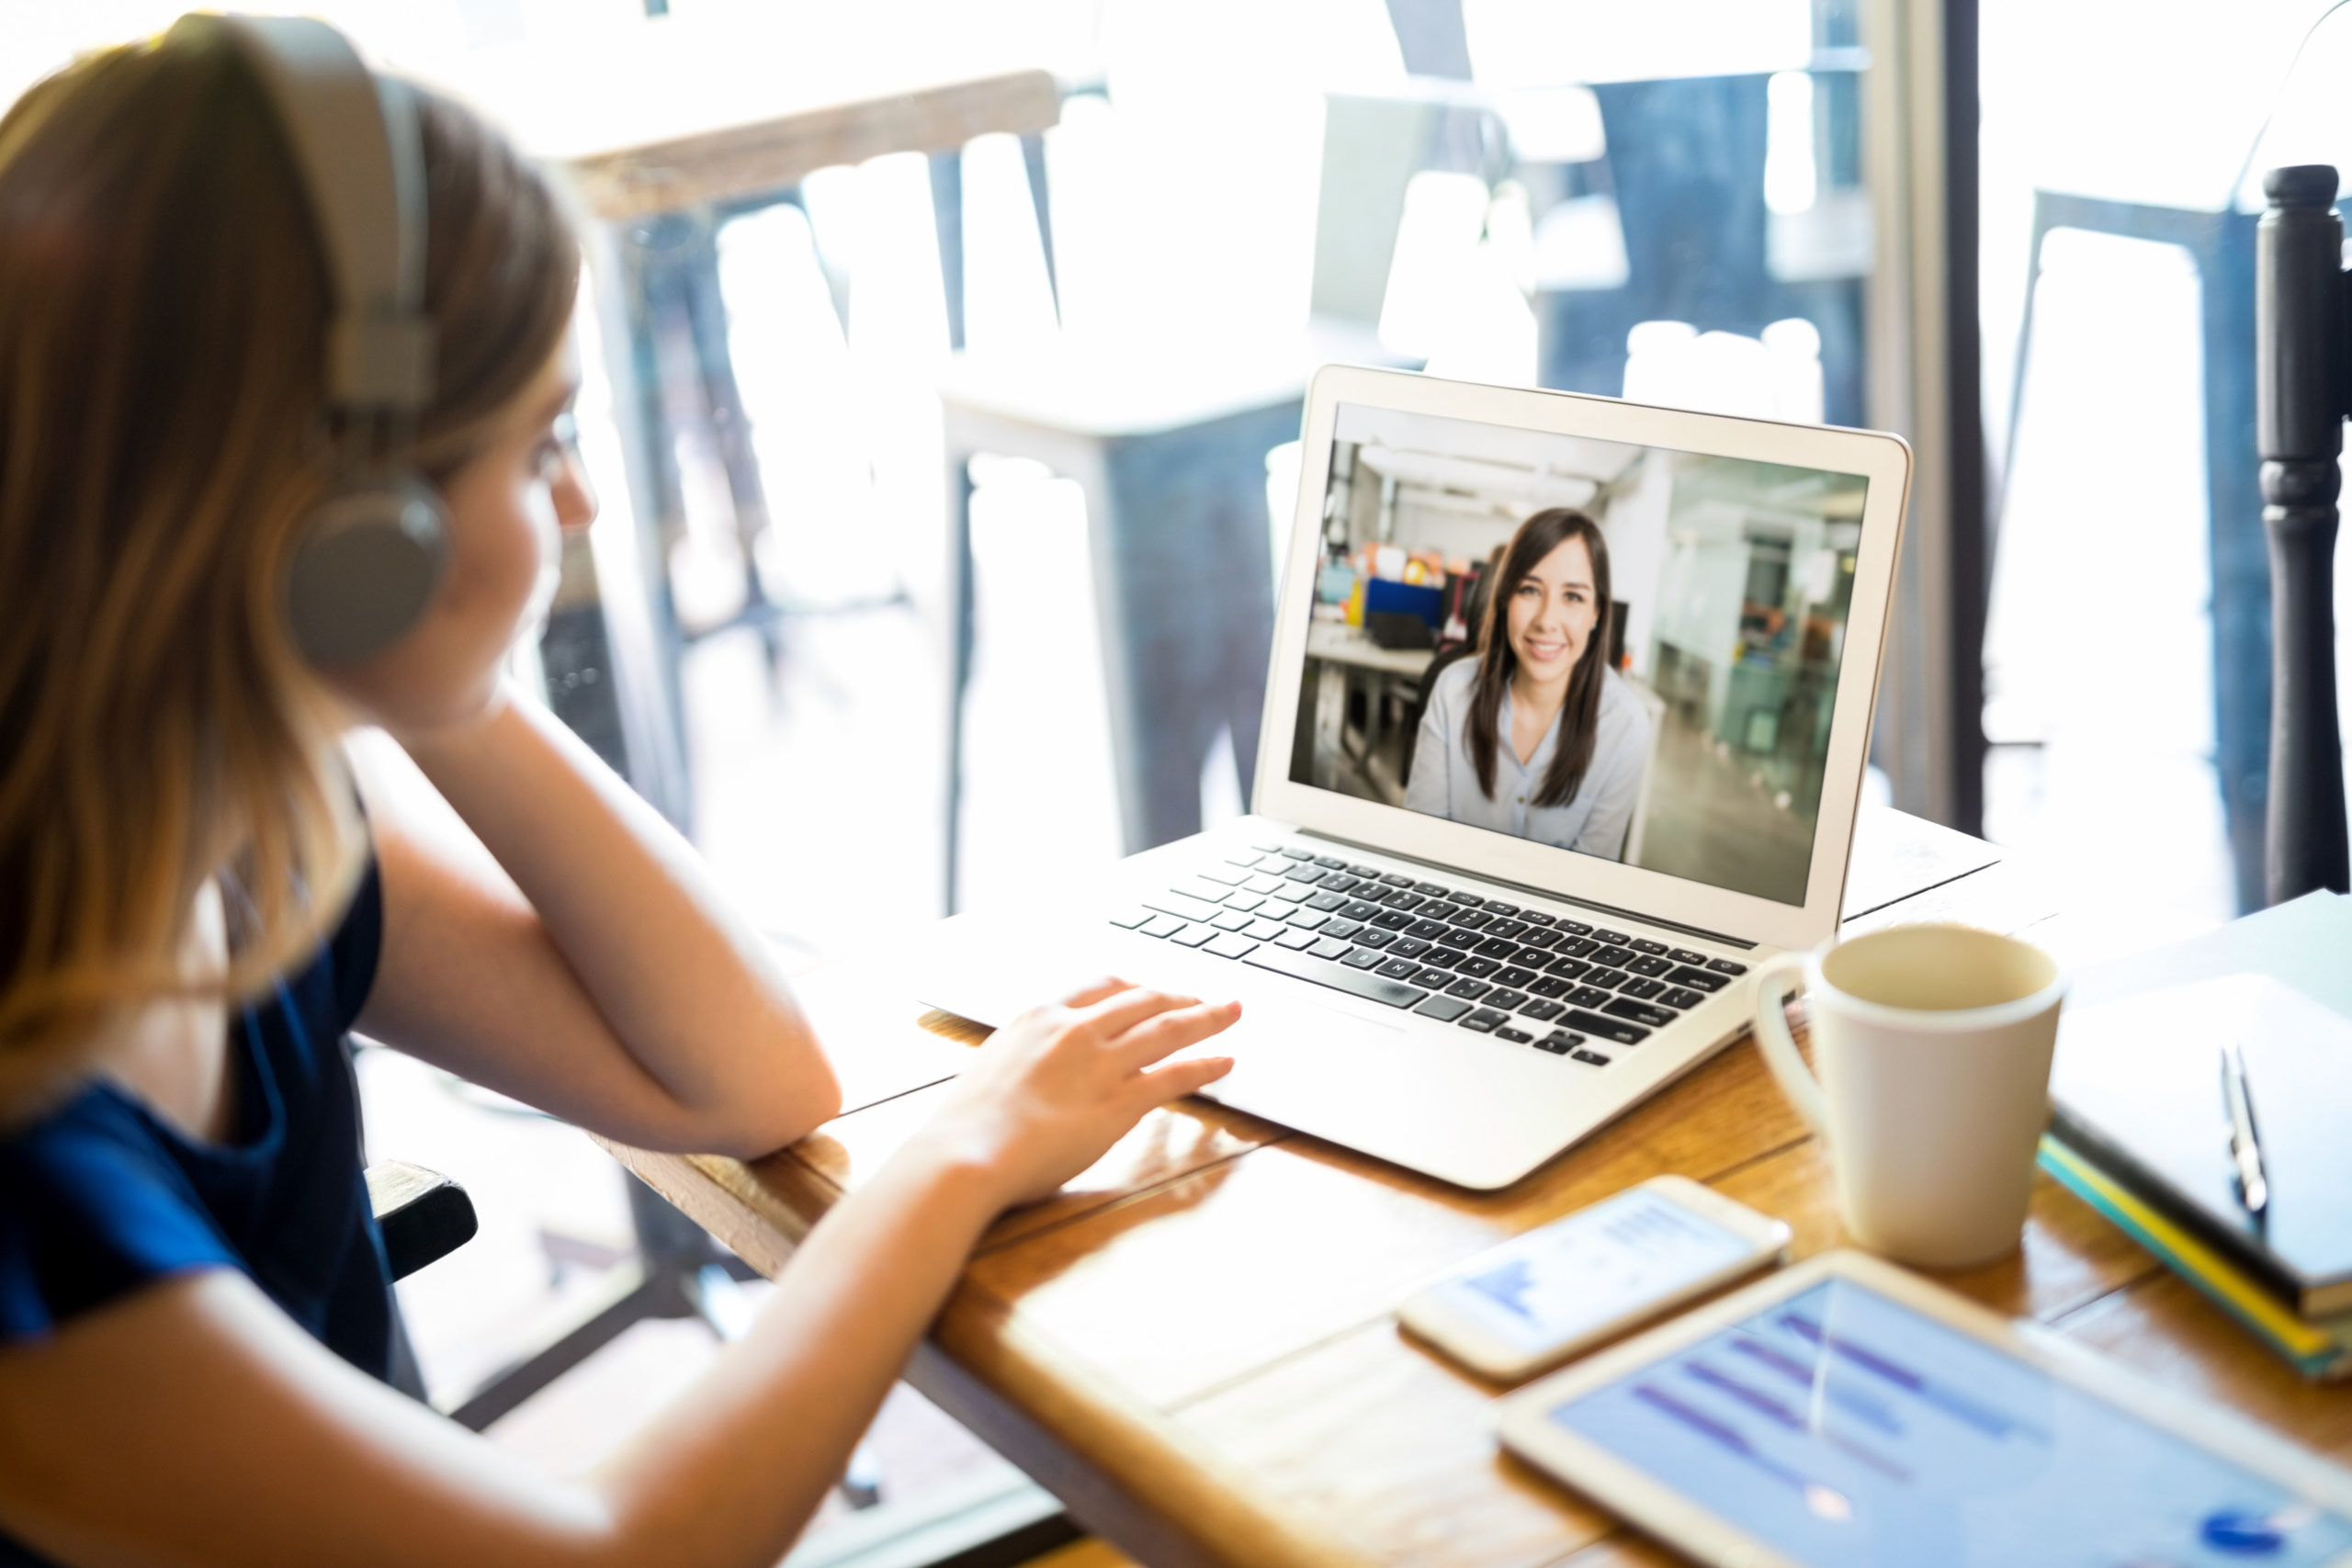 New Jersey To End Temporary Work-From-Home Tax Rules